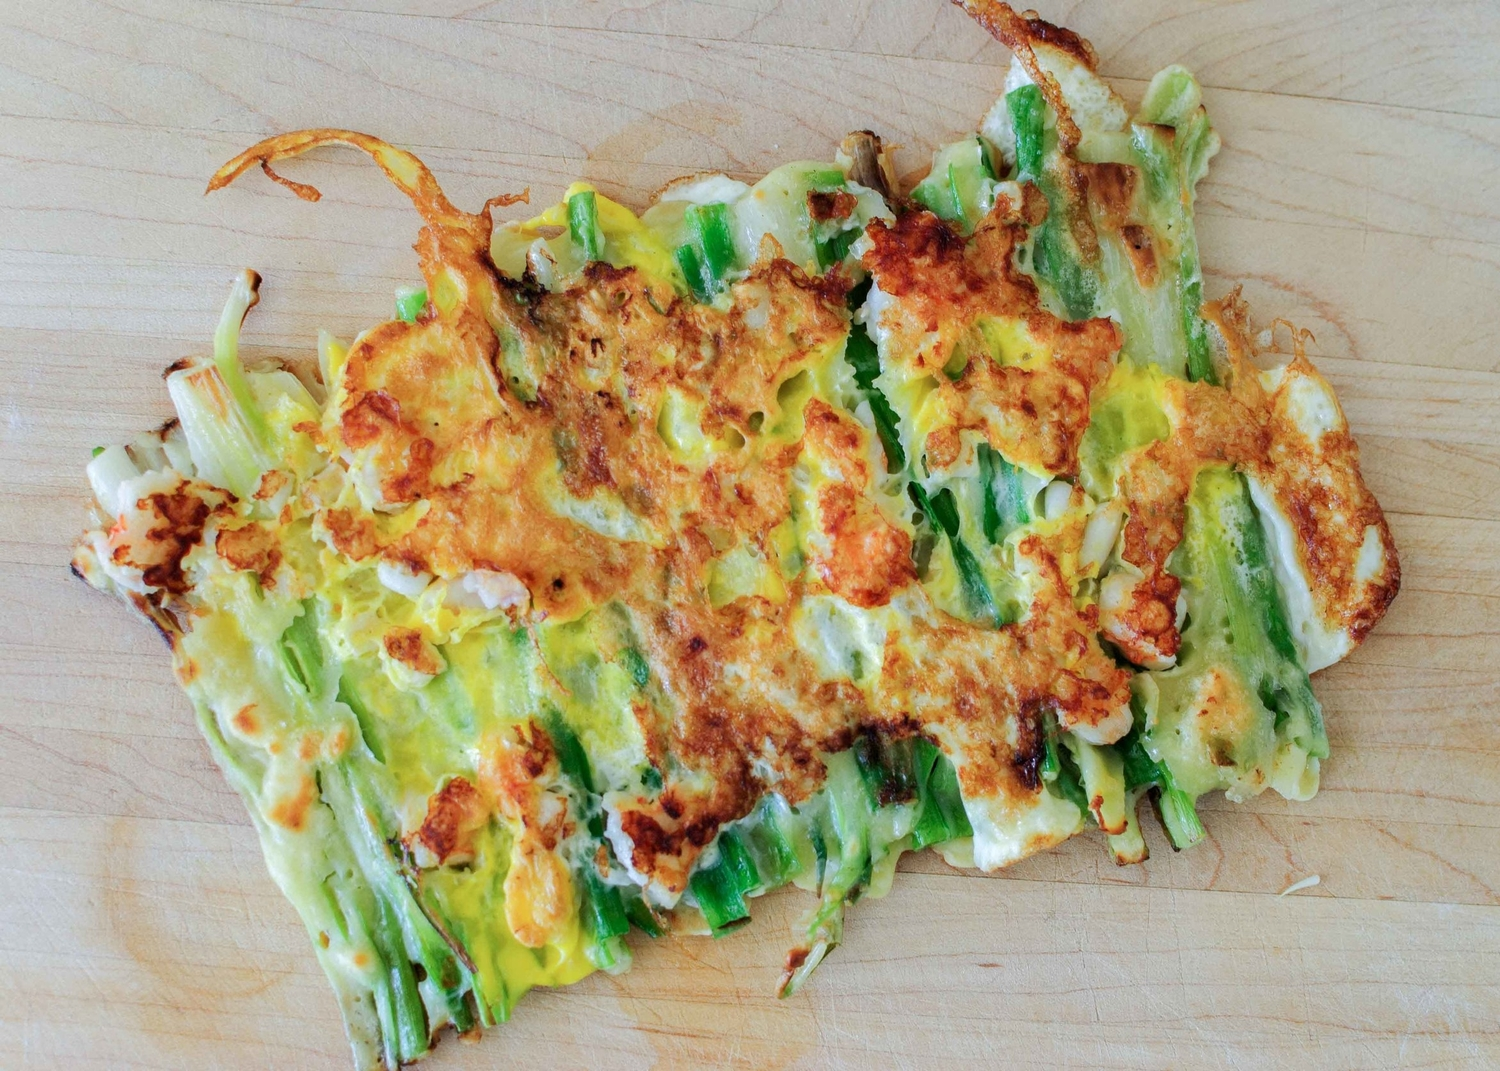 Korean Green Onion and Seafood Pancakes (Pa Jun)